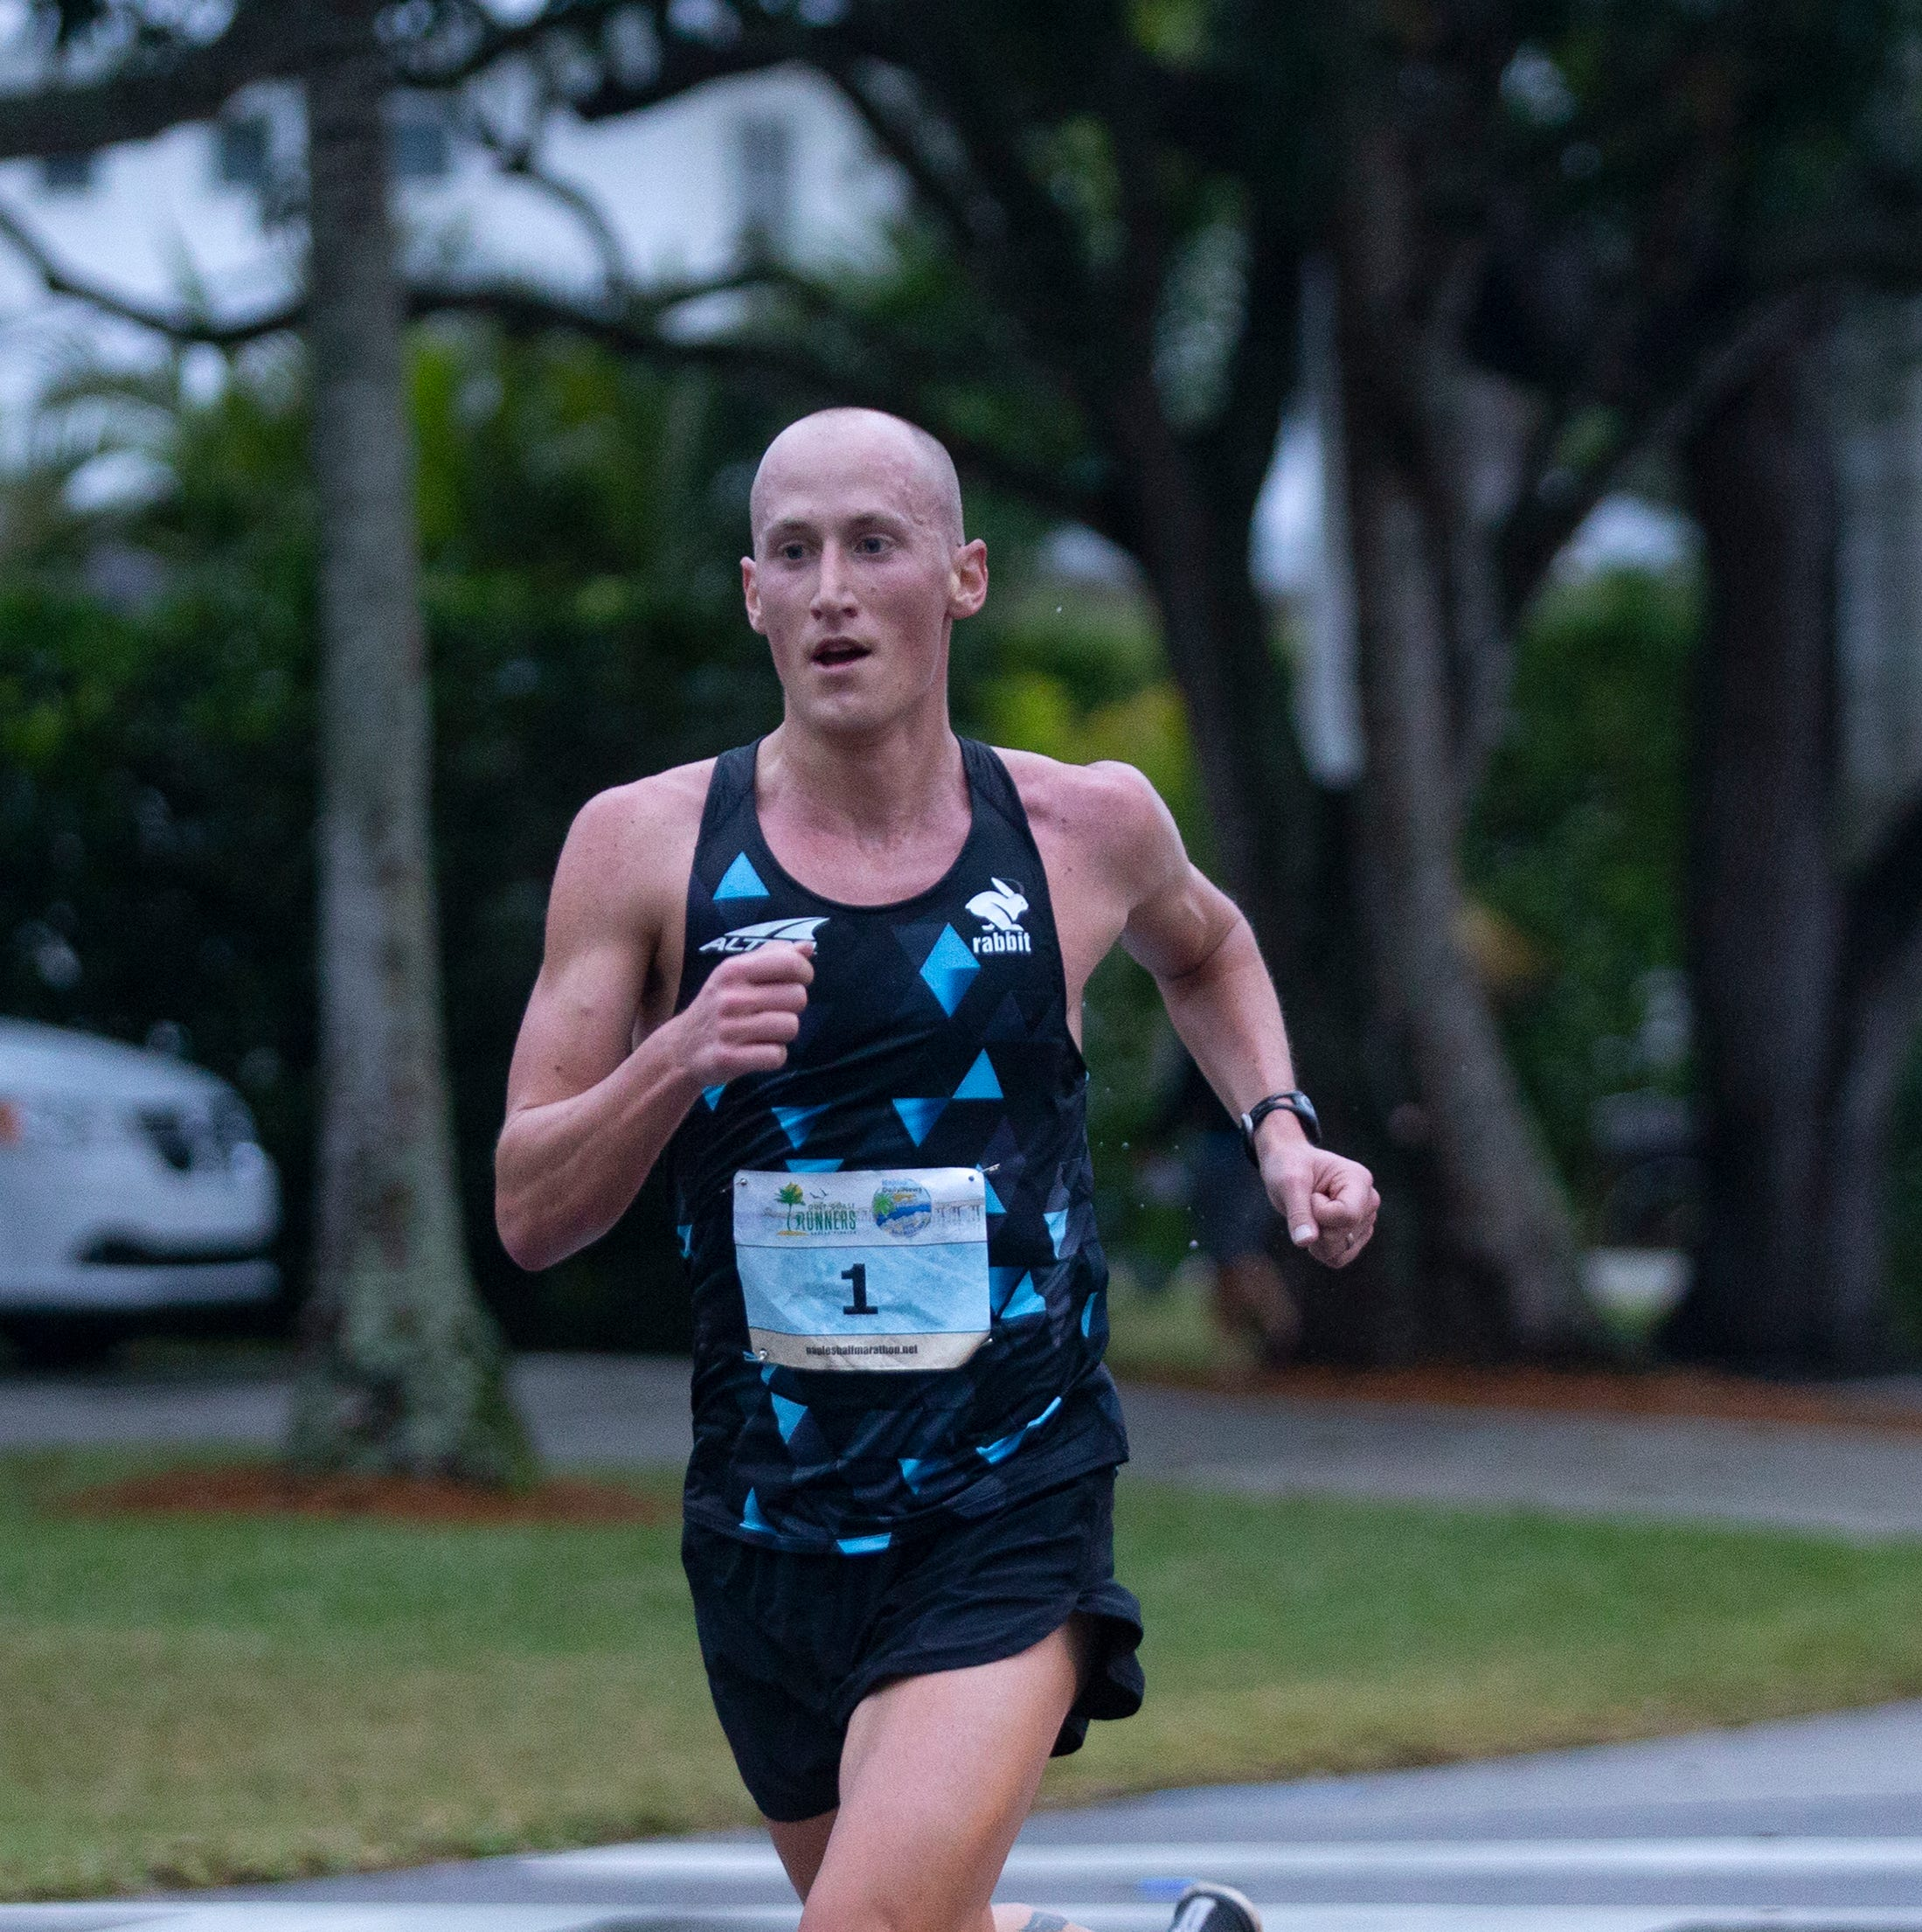 2019 NDN Half Marathon: Tyler McCandless wins second title, continues hot streak in Naples